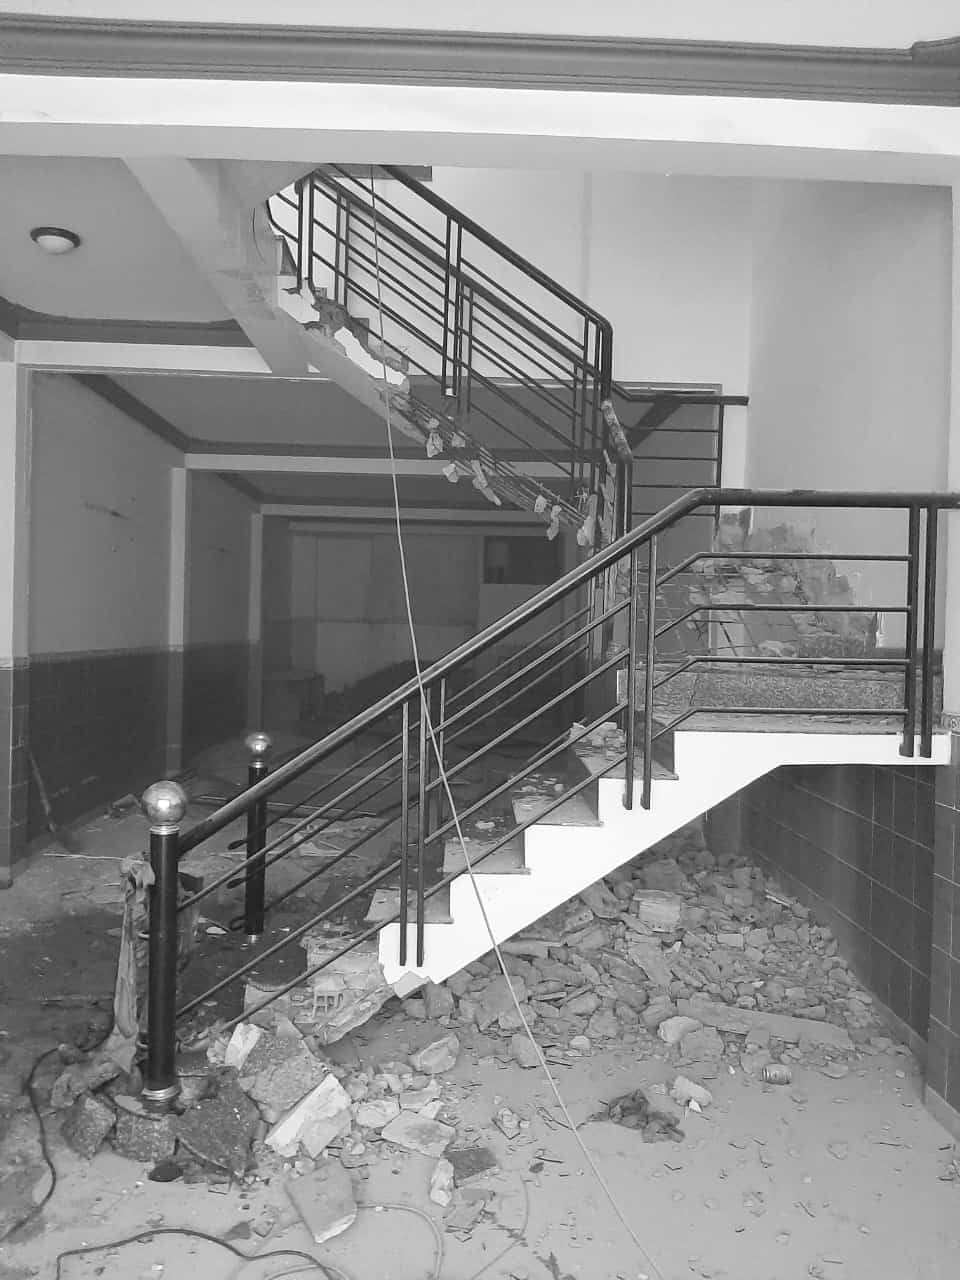 This is one of the house's photos before renovation.